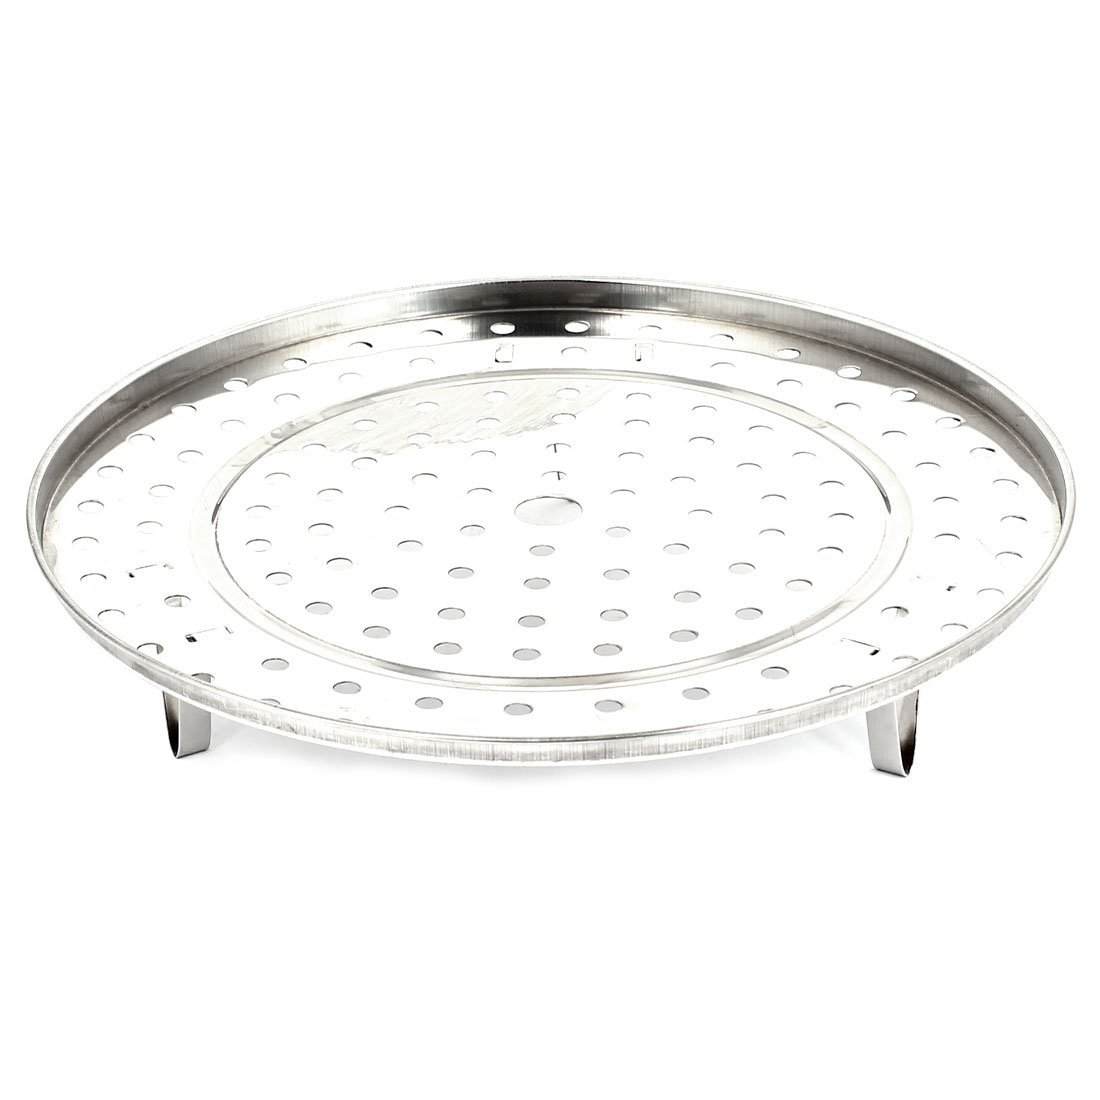 GSFY-Stainless Steel Kitchen Food Steaming Steamer Rack Stand 27.5cm